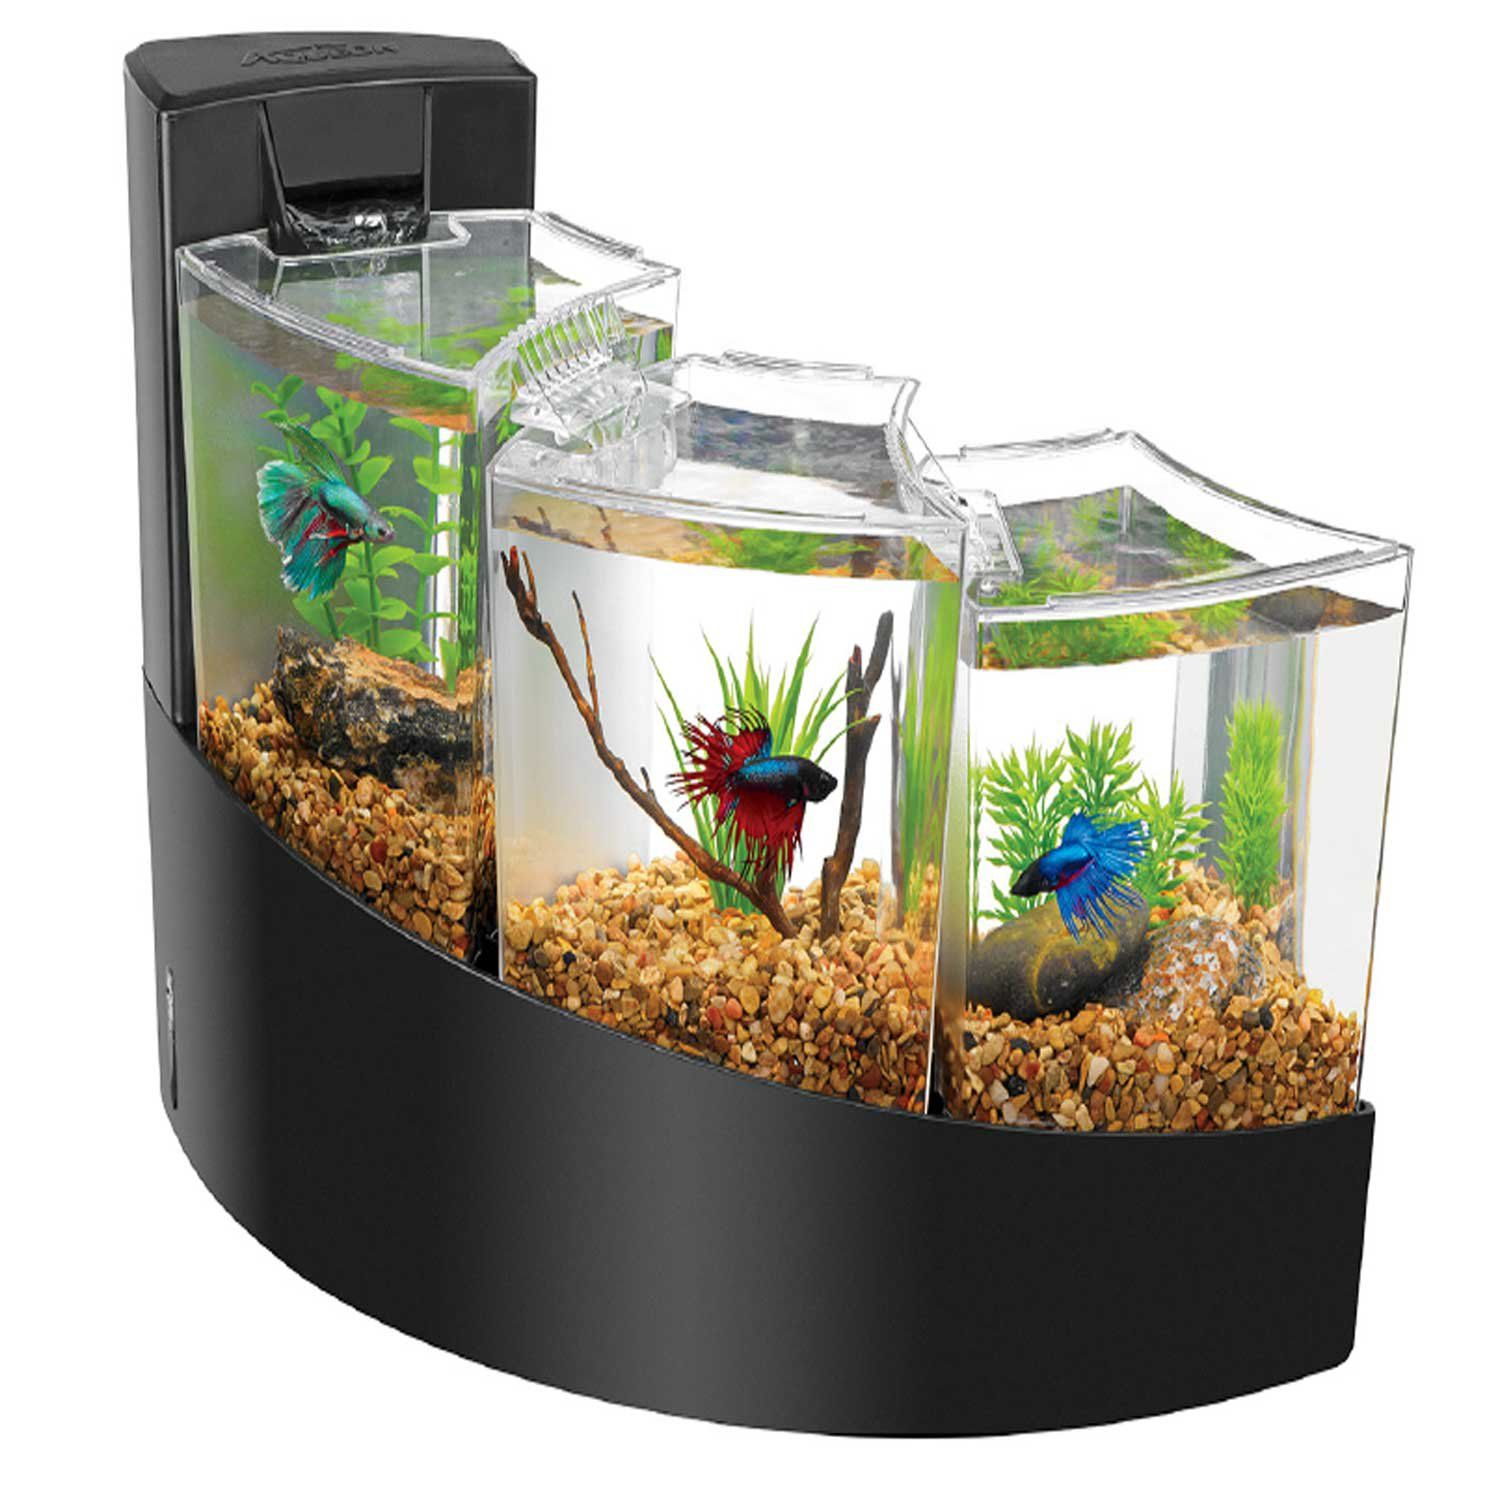 pin by karen a on pet supplies aquarium aquarium fische aquarien. Black Bedroom Furniture Sets. Home Design Ideas